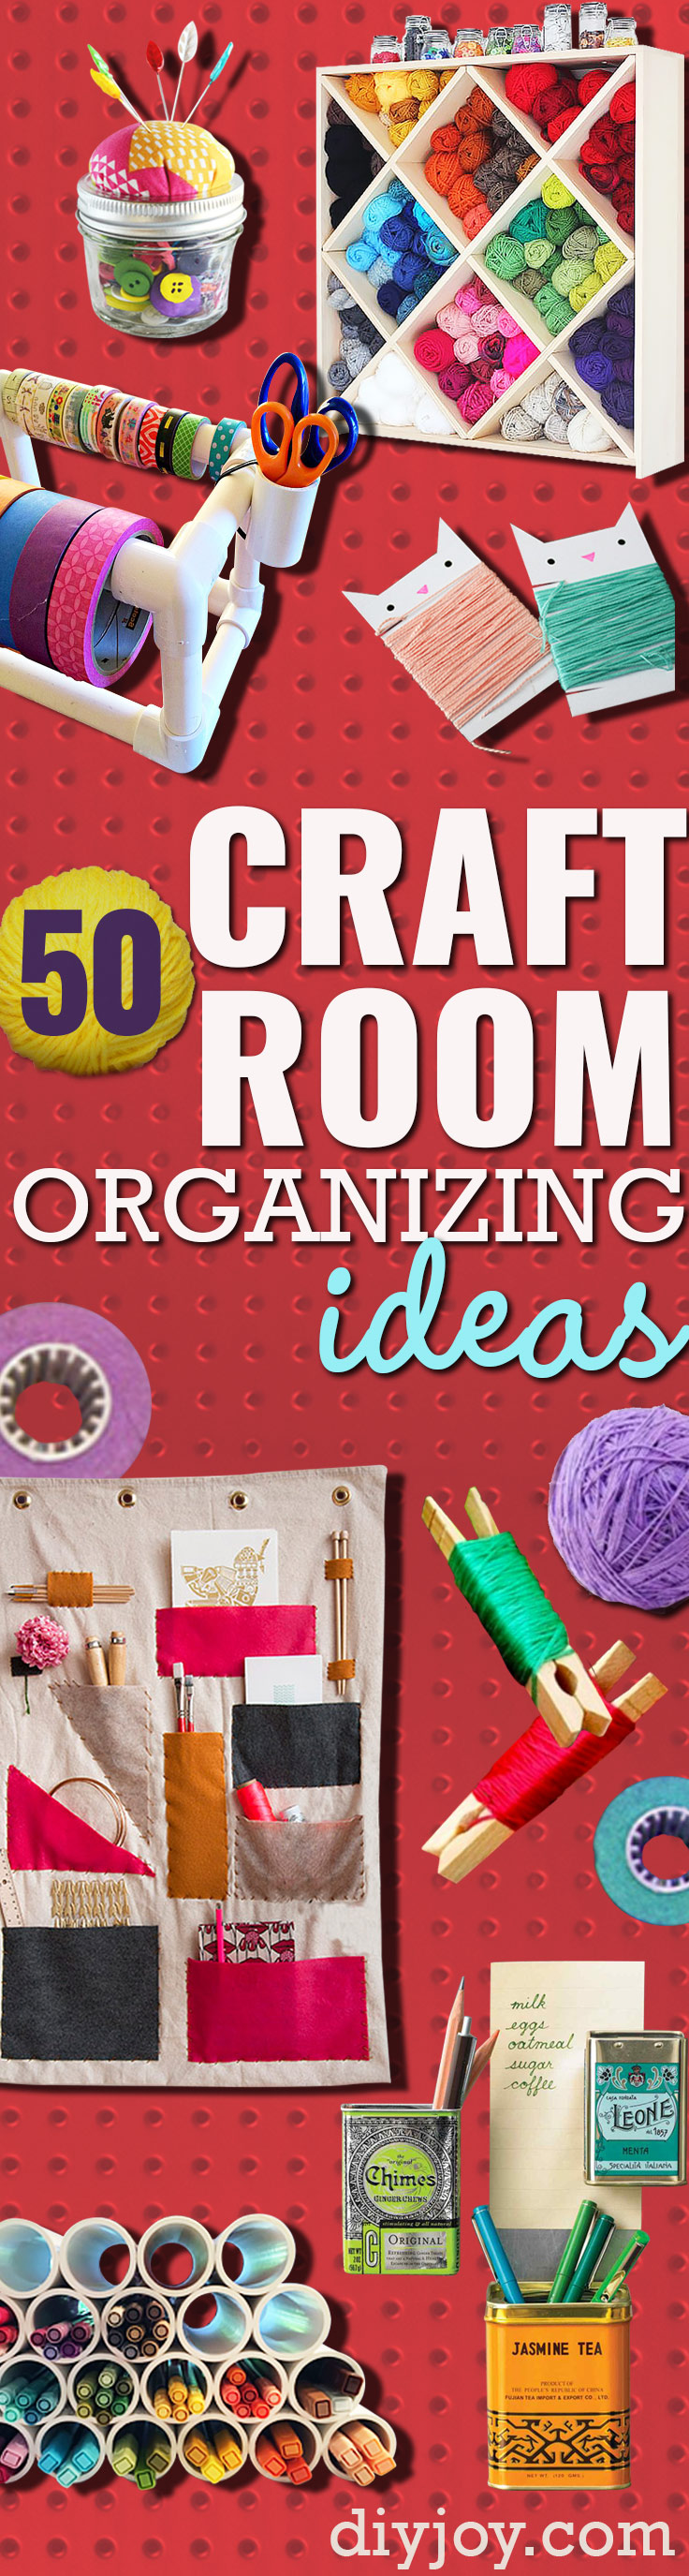 1000 images about craft room ideas on pinterest diy and for Craft supplies organization ideas